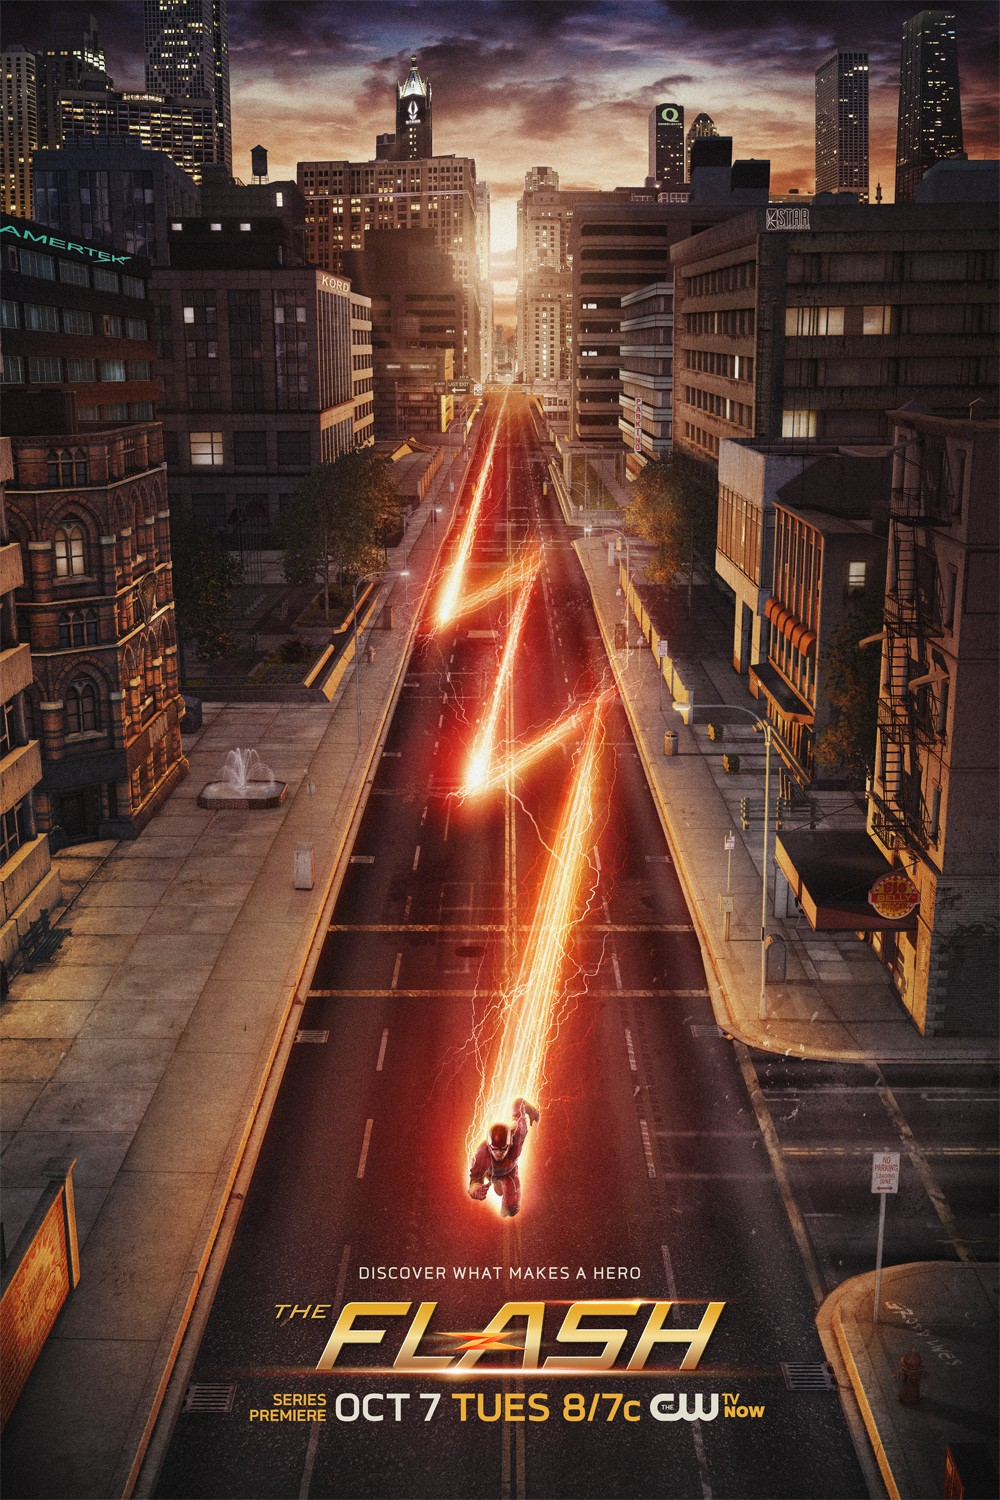 Season 1 (The Flash)